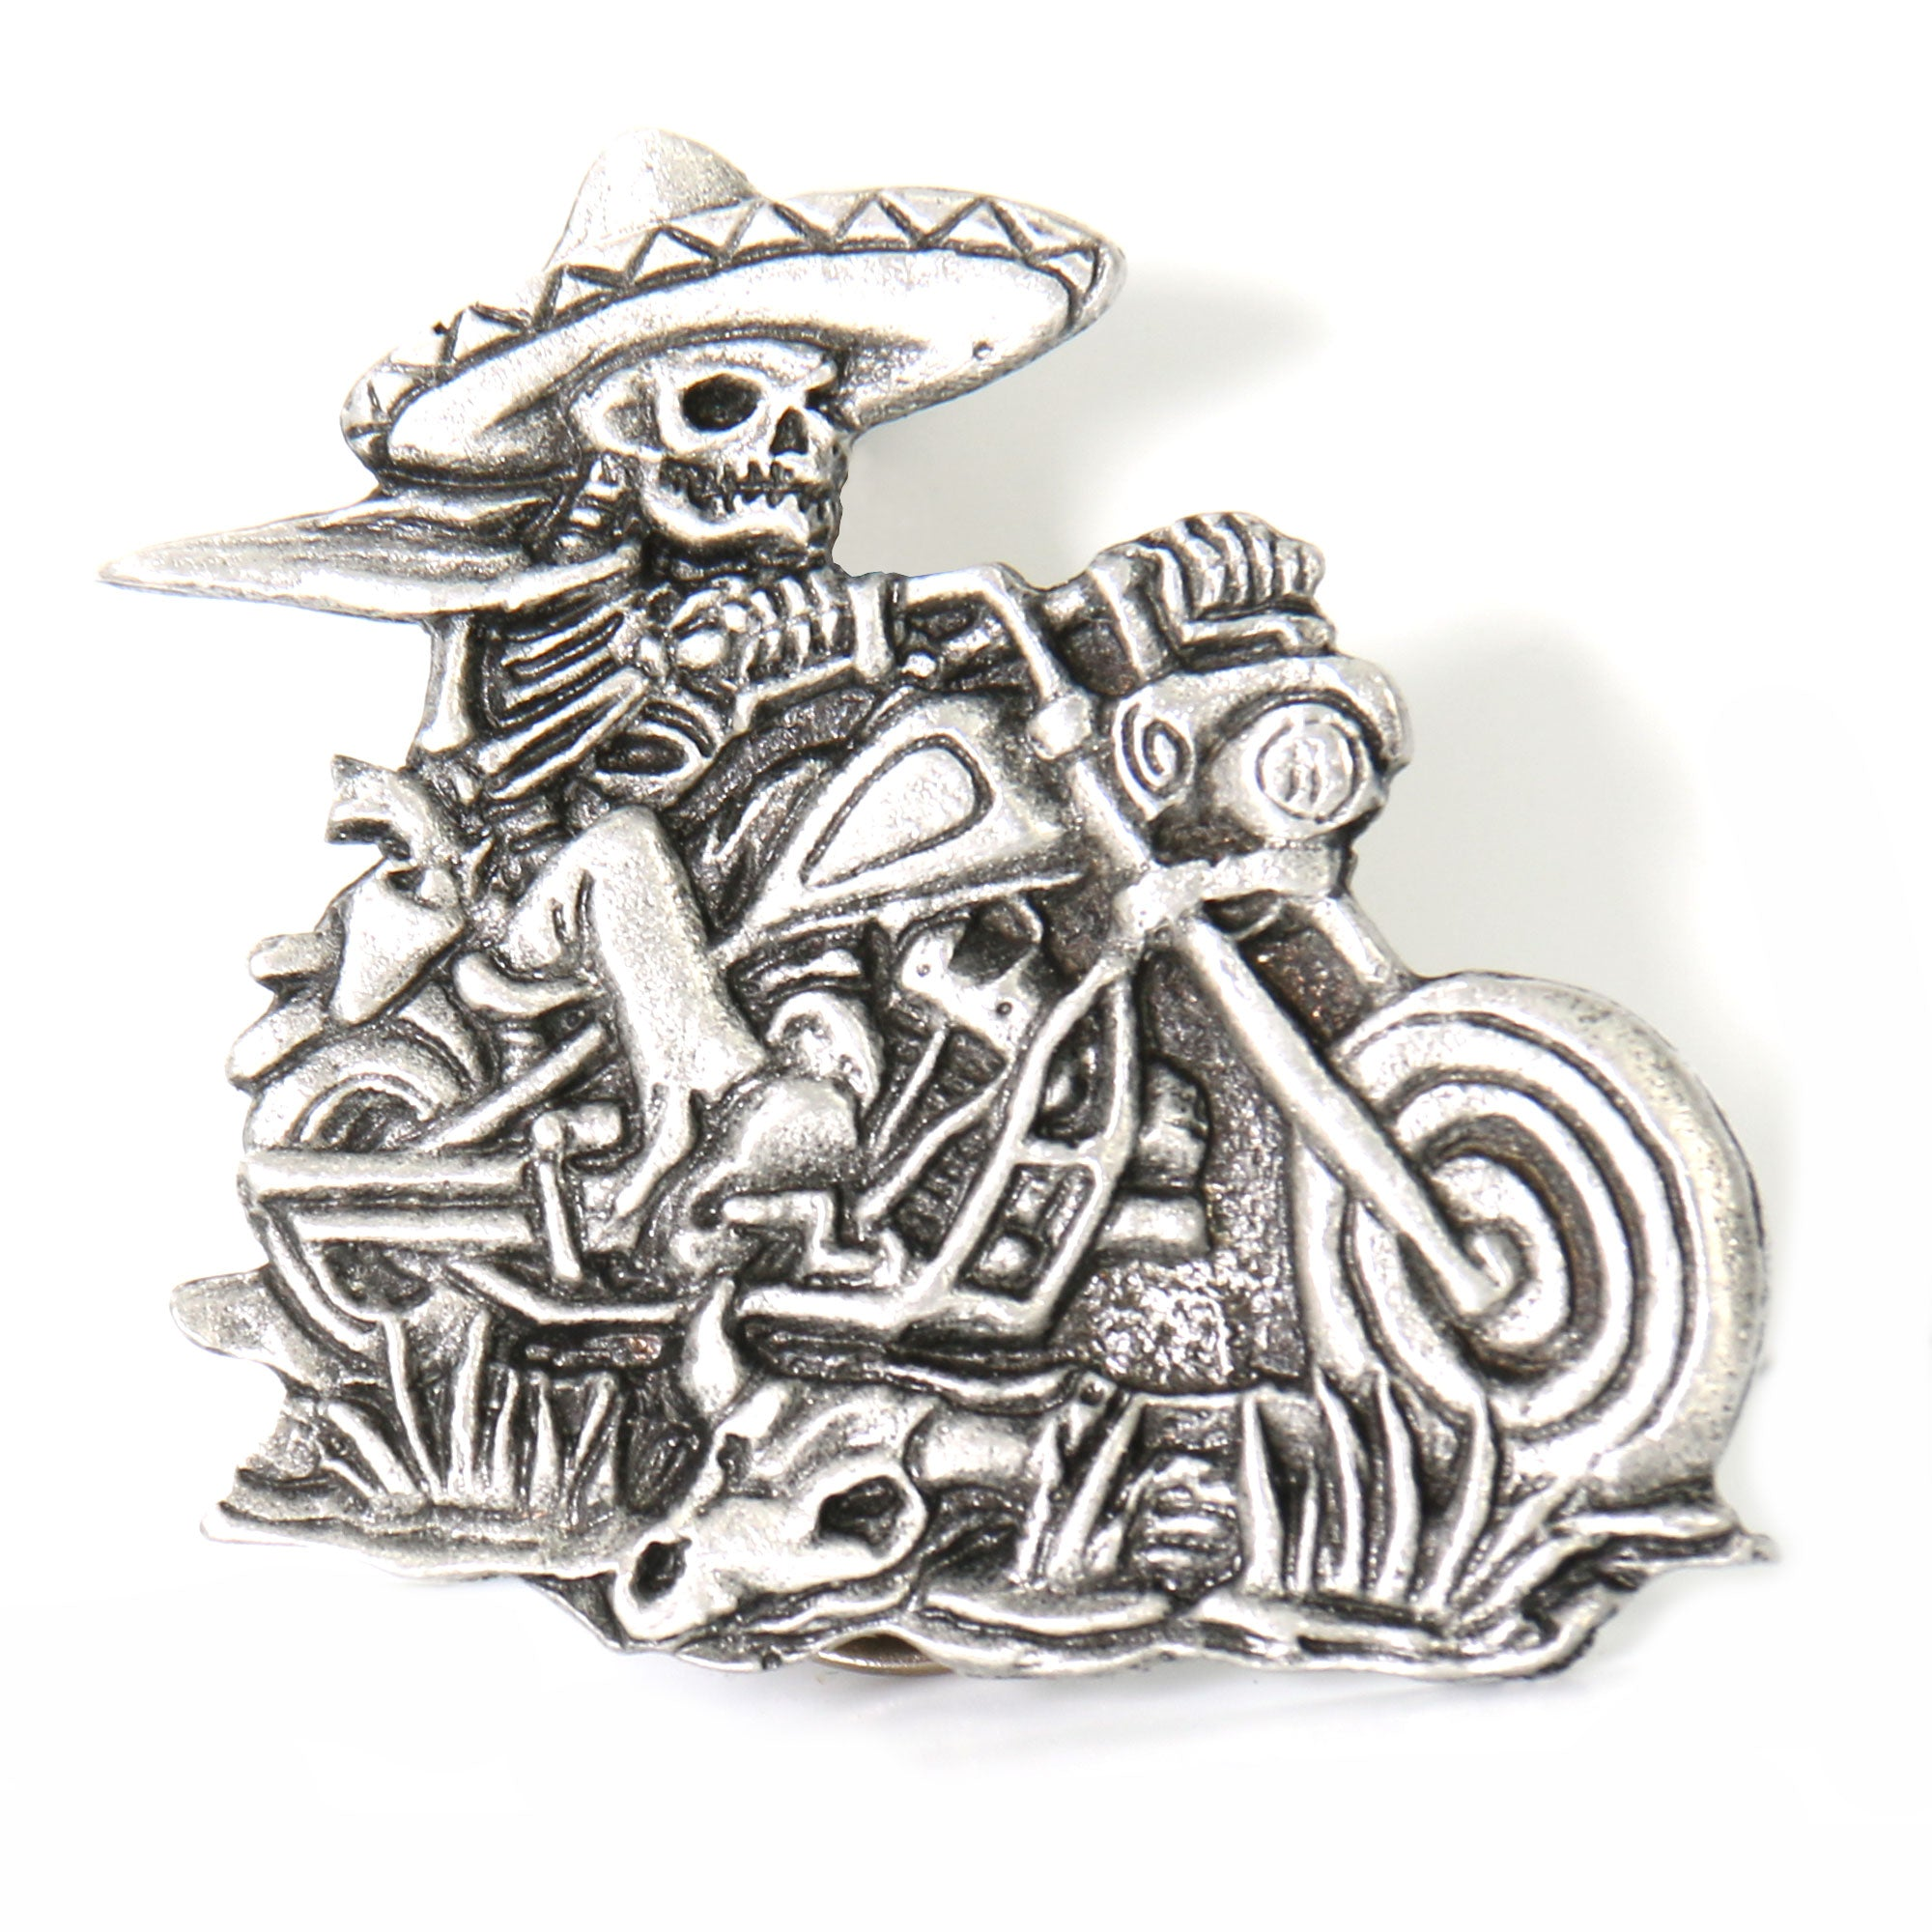 Hot Leathers Sombrero Skeleton Rider Pin